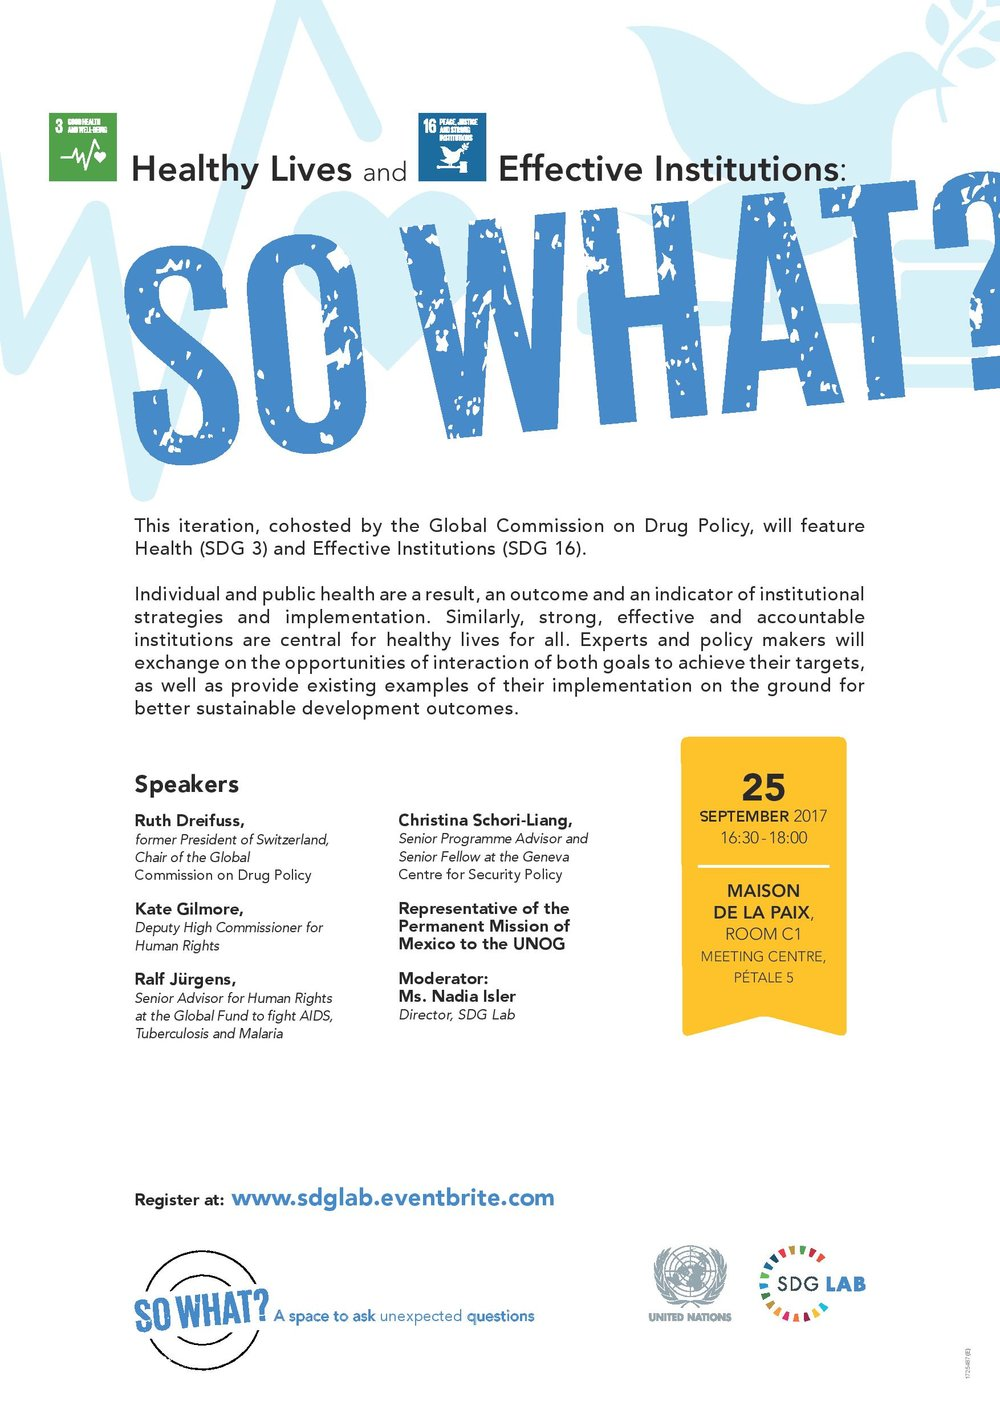 SDG_so-what-series_POSTER2_1725487-page-001.jpg